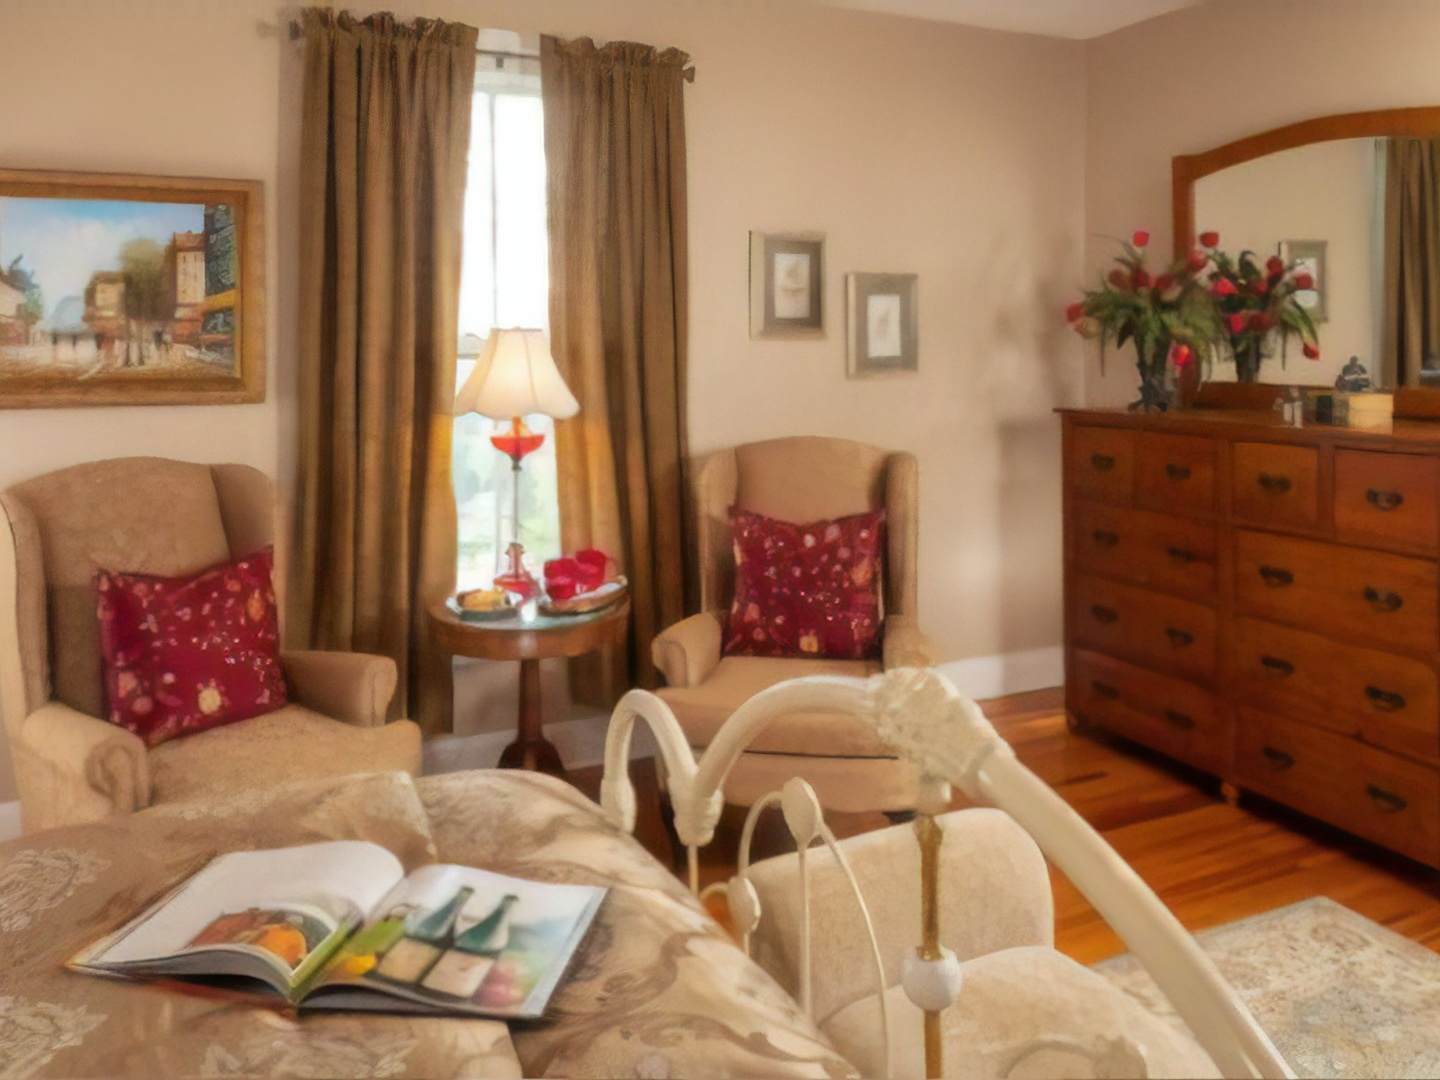 A living room filled with furniture and a fire place at Orchard House Bed & Breakfast.